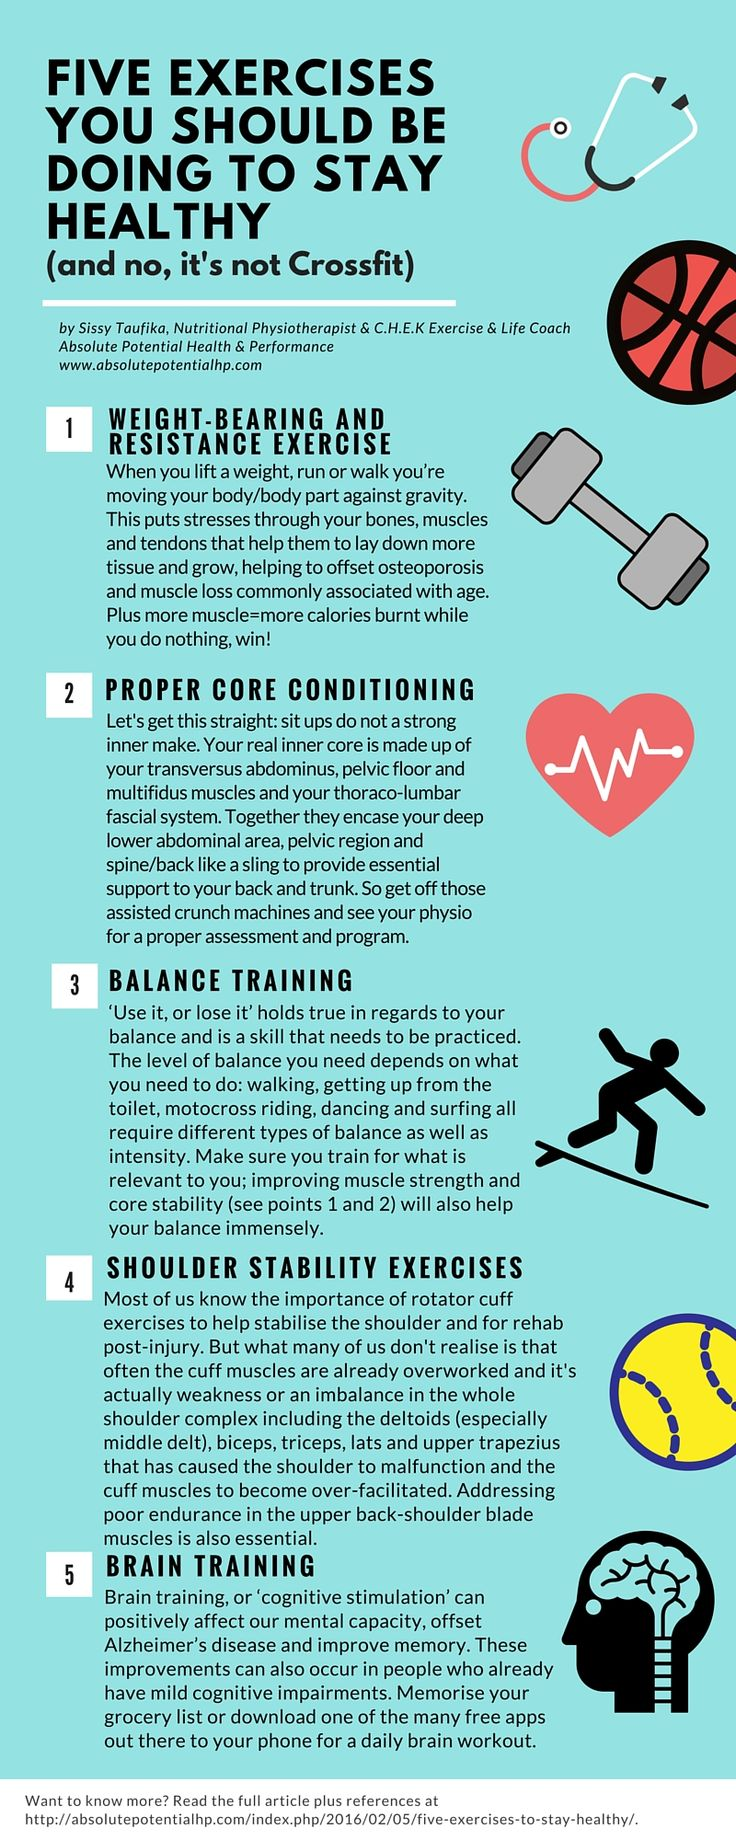 Five essential exercises to stay healthy, strong and painfree. From Absolute Potential's in-house Physiotherapist & CHEK Practitioner